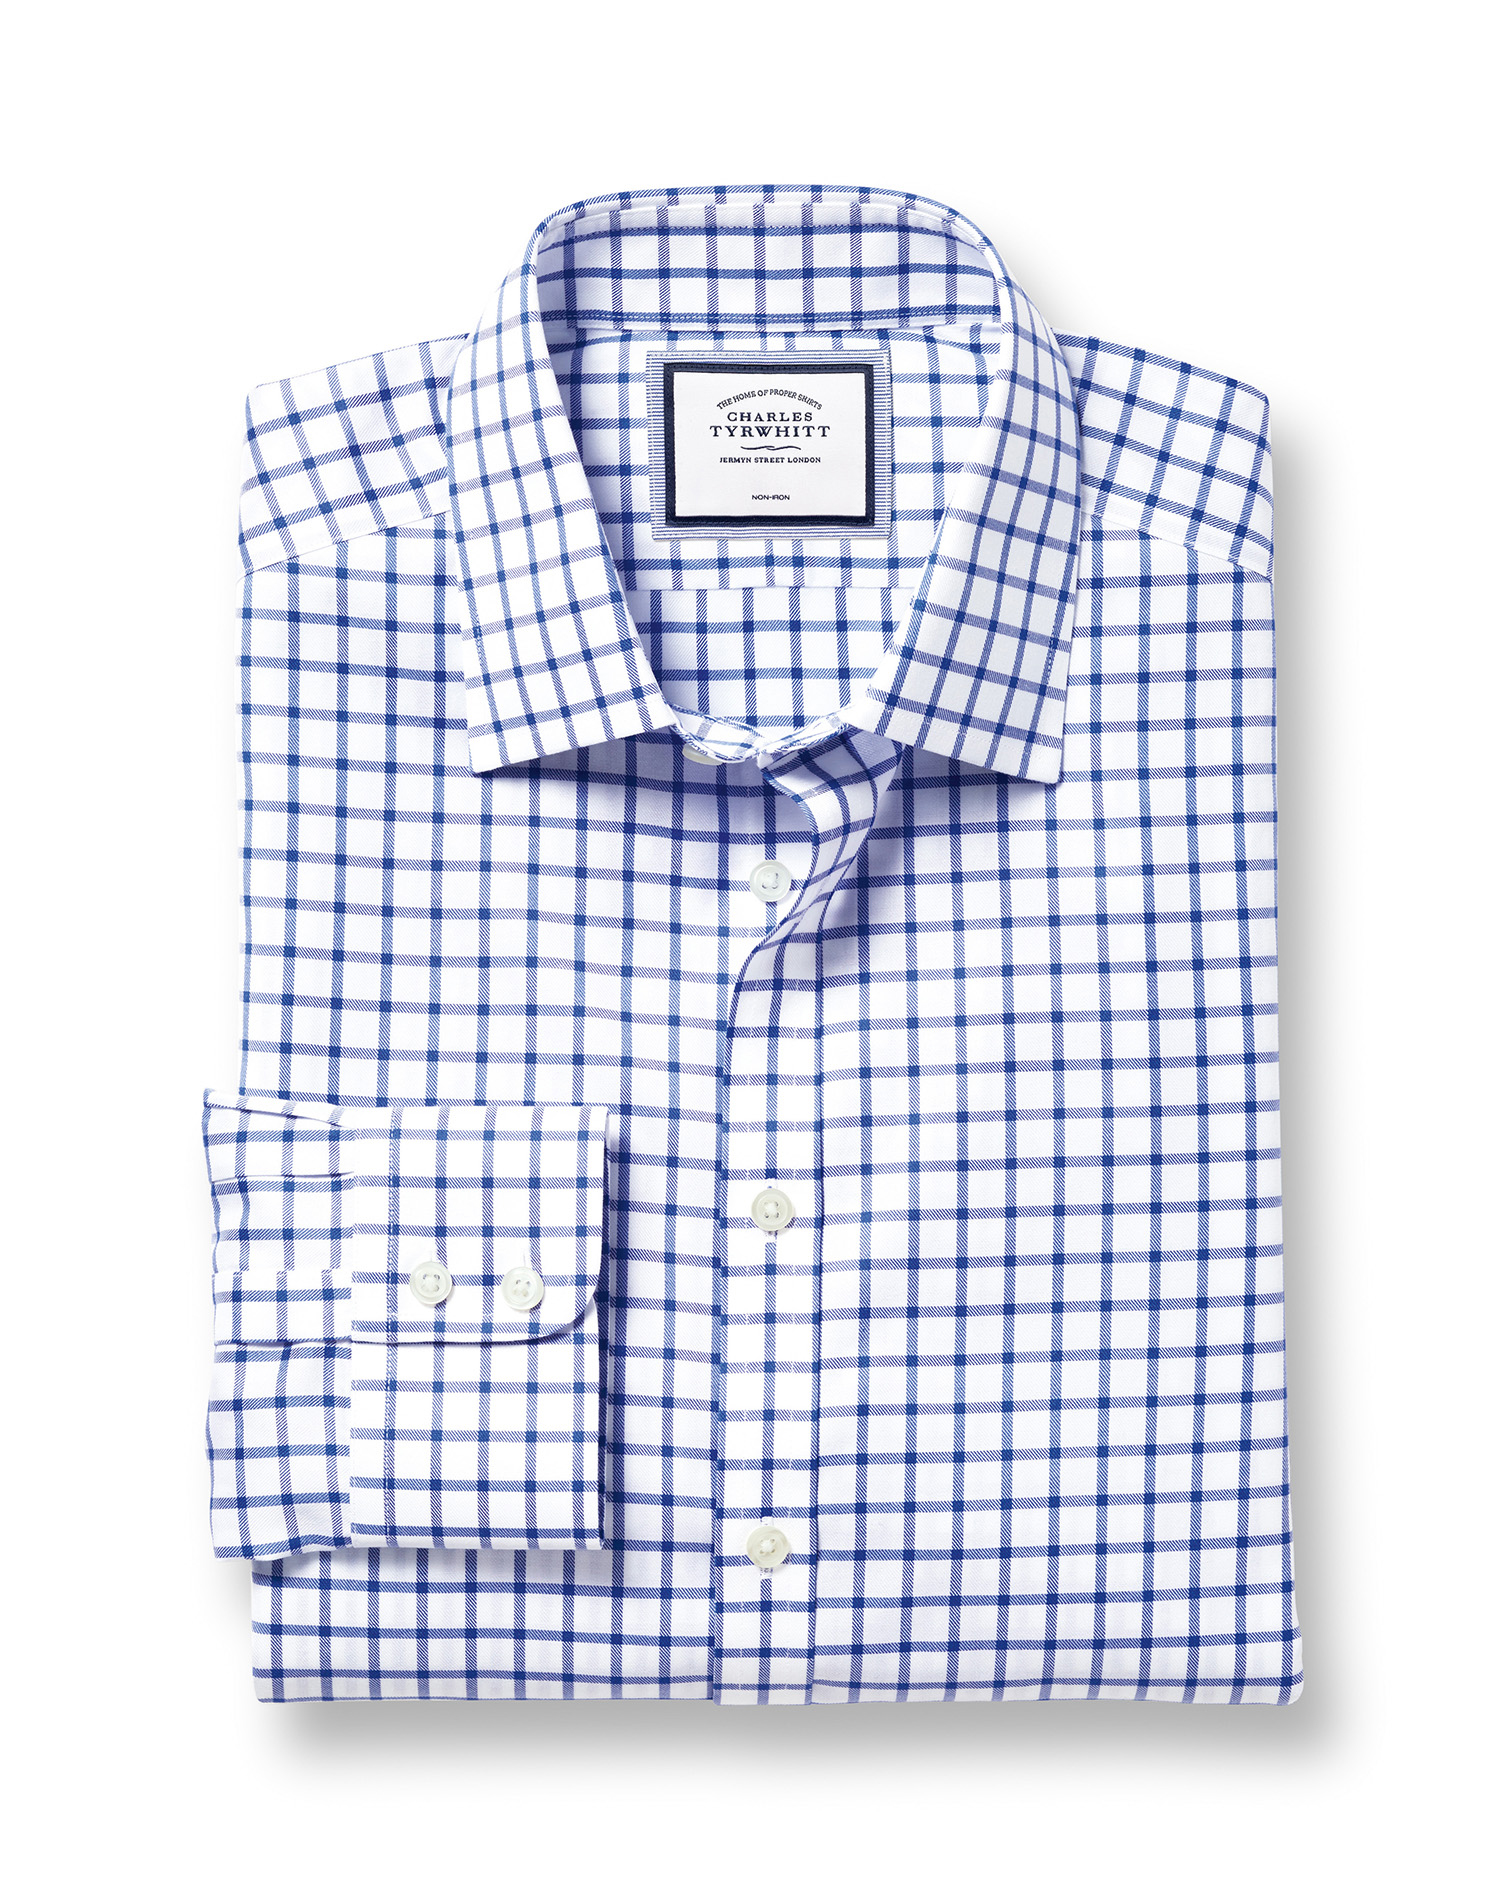 Extra Slim Fit Non-Iron Twill Grid Check Royal Blue Cotton Formal Shirt Double Cuff Size 16/33 by Charles Tyrwhitt from Charles Tyrwhitt